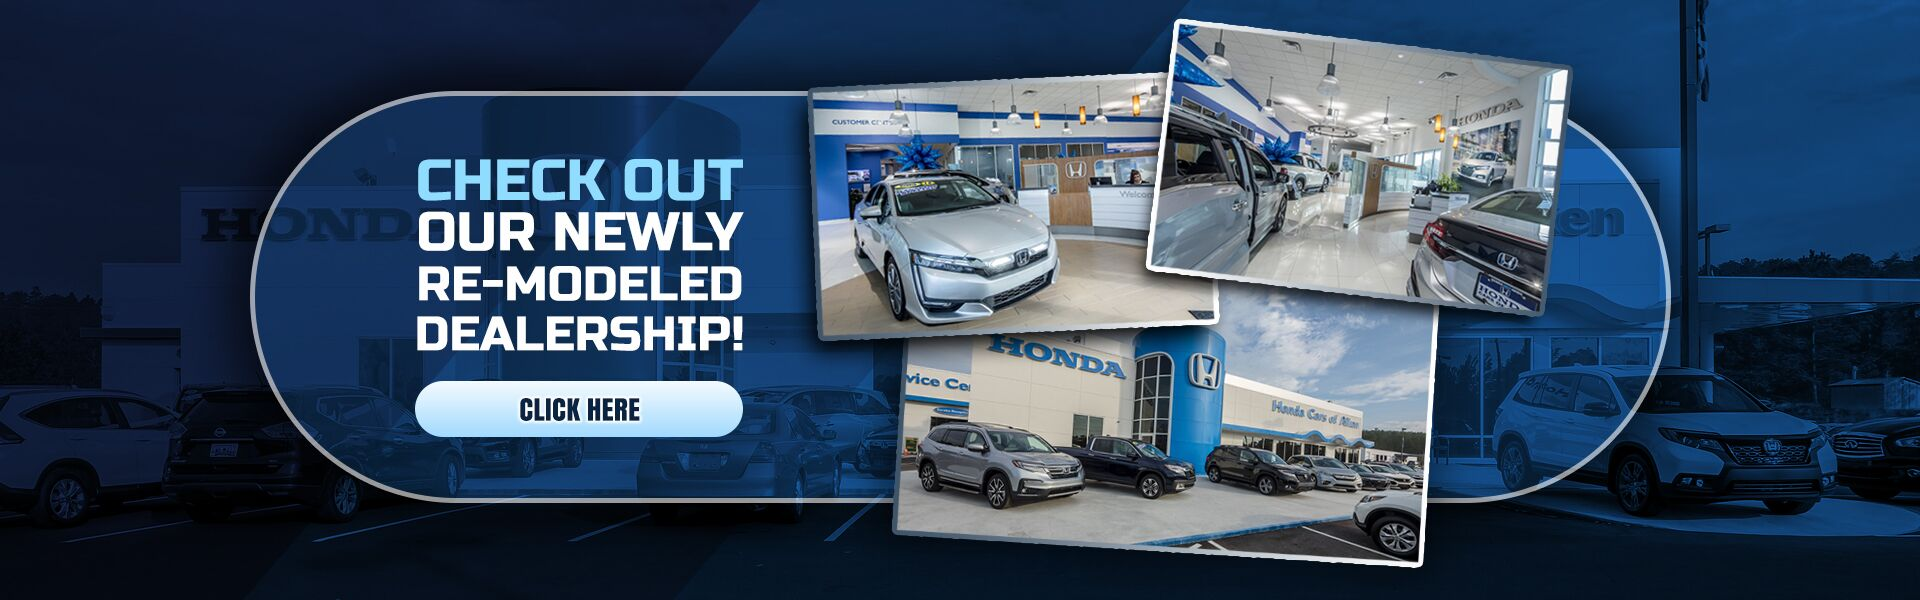 Check out our remodeled dealership